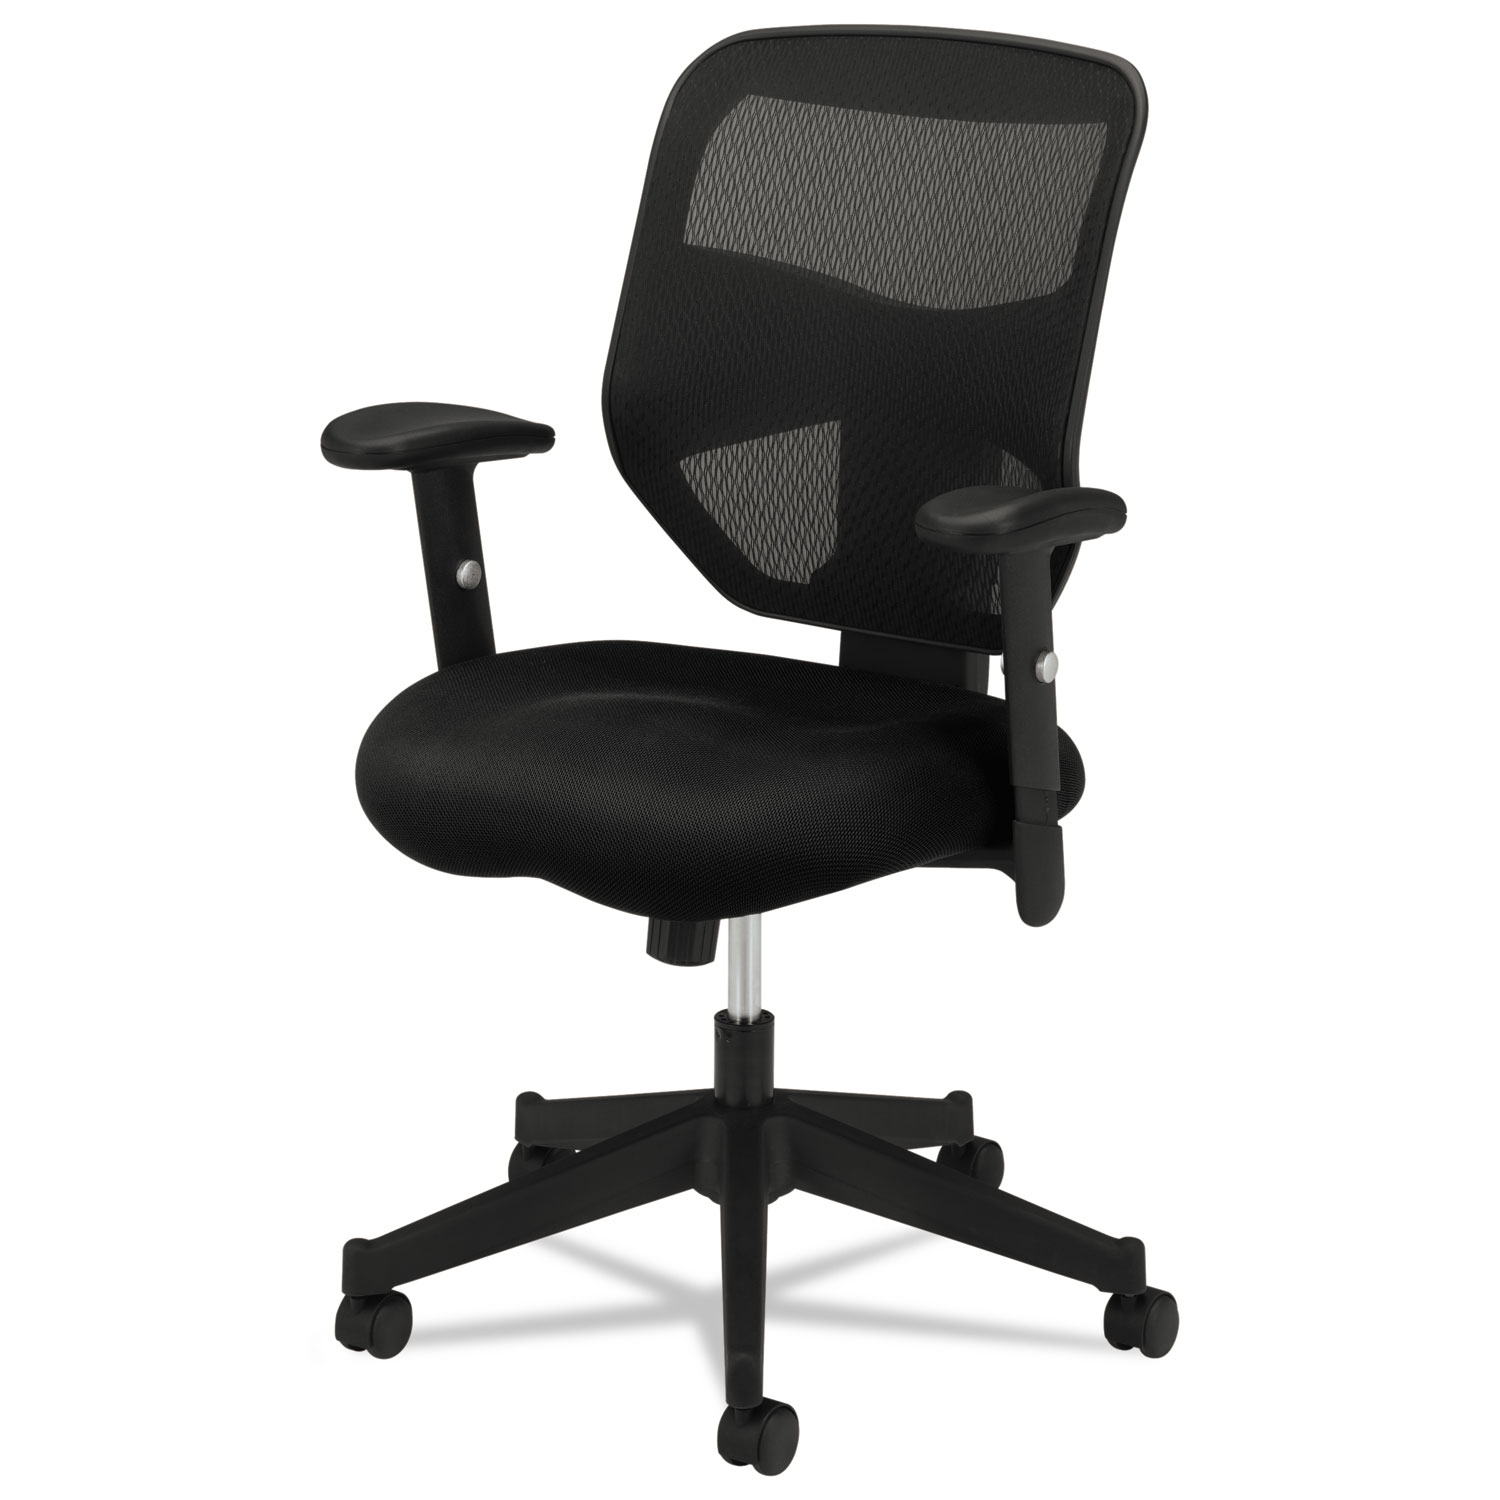 Work Chair Vl531 Series High Back Work Chair By Hon Bsxvl531mm10